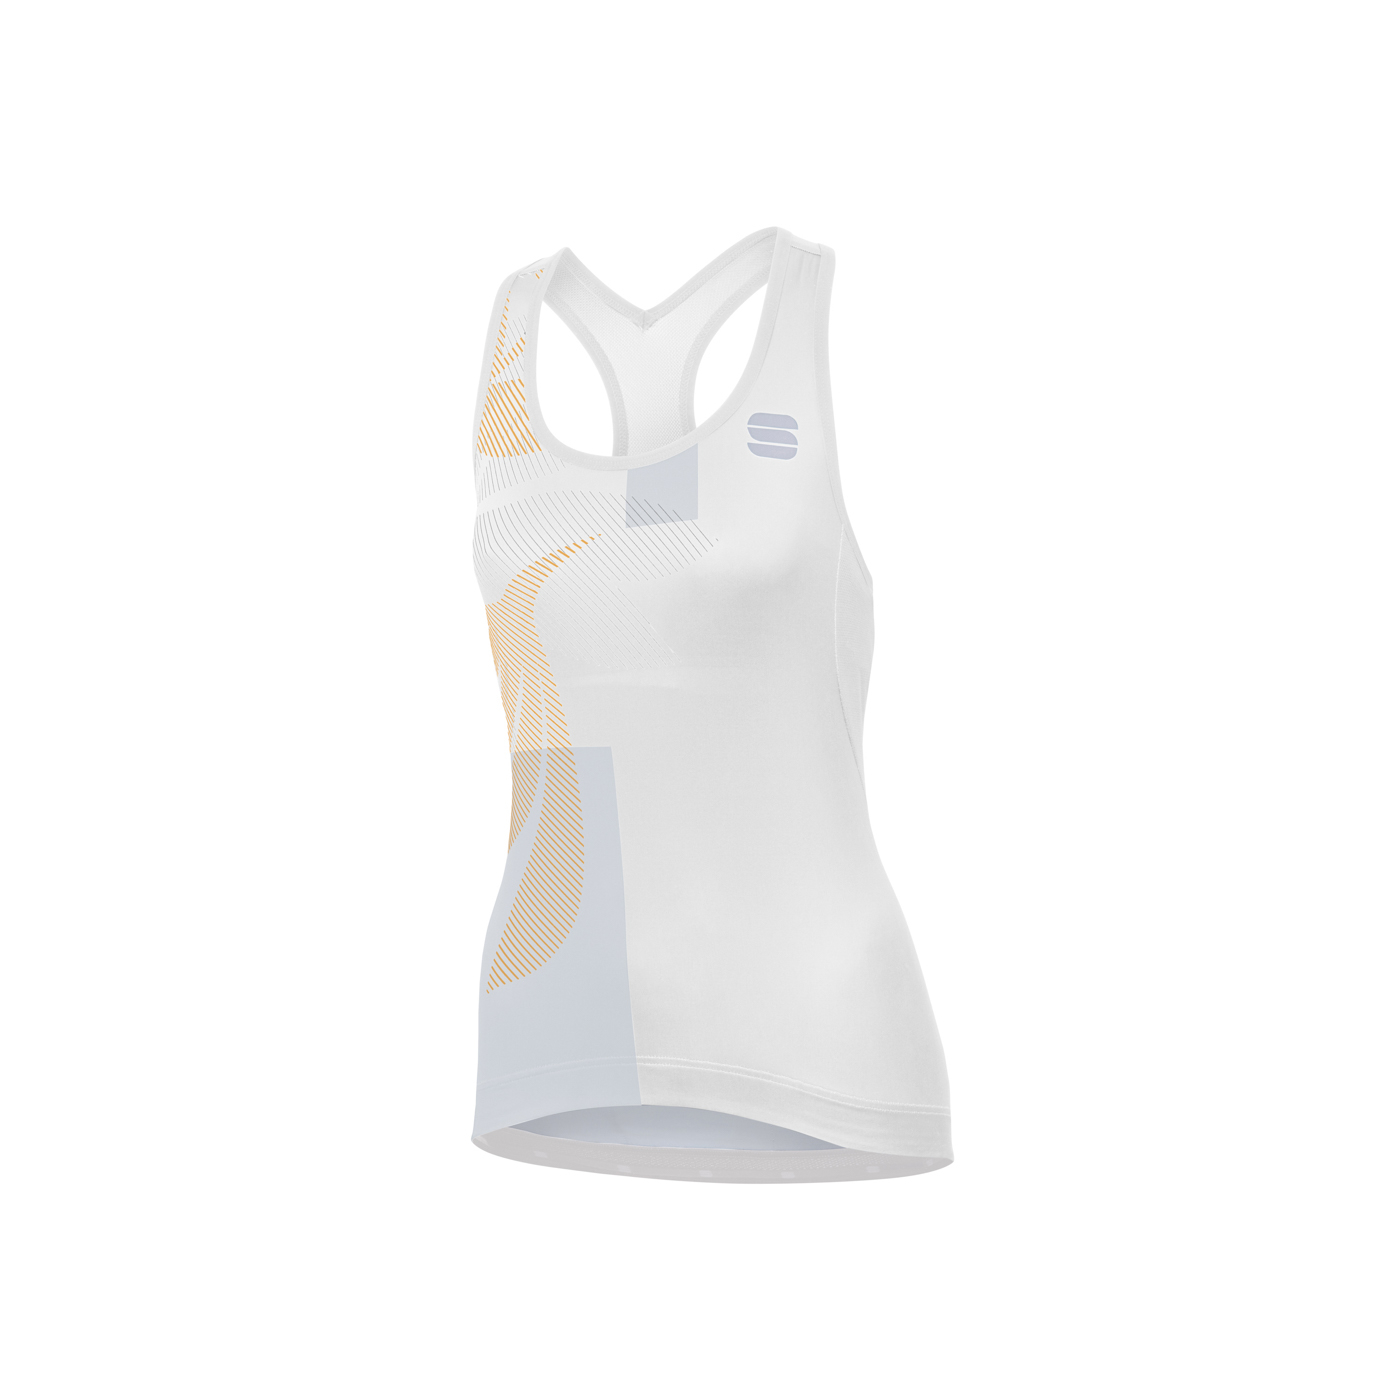 | Sportful Fietsshirt Mouwloos voor Dames Wit Zilver - SF Oasis W Top-White Silver Gold